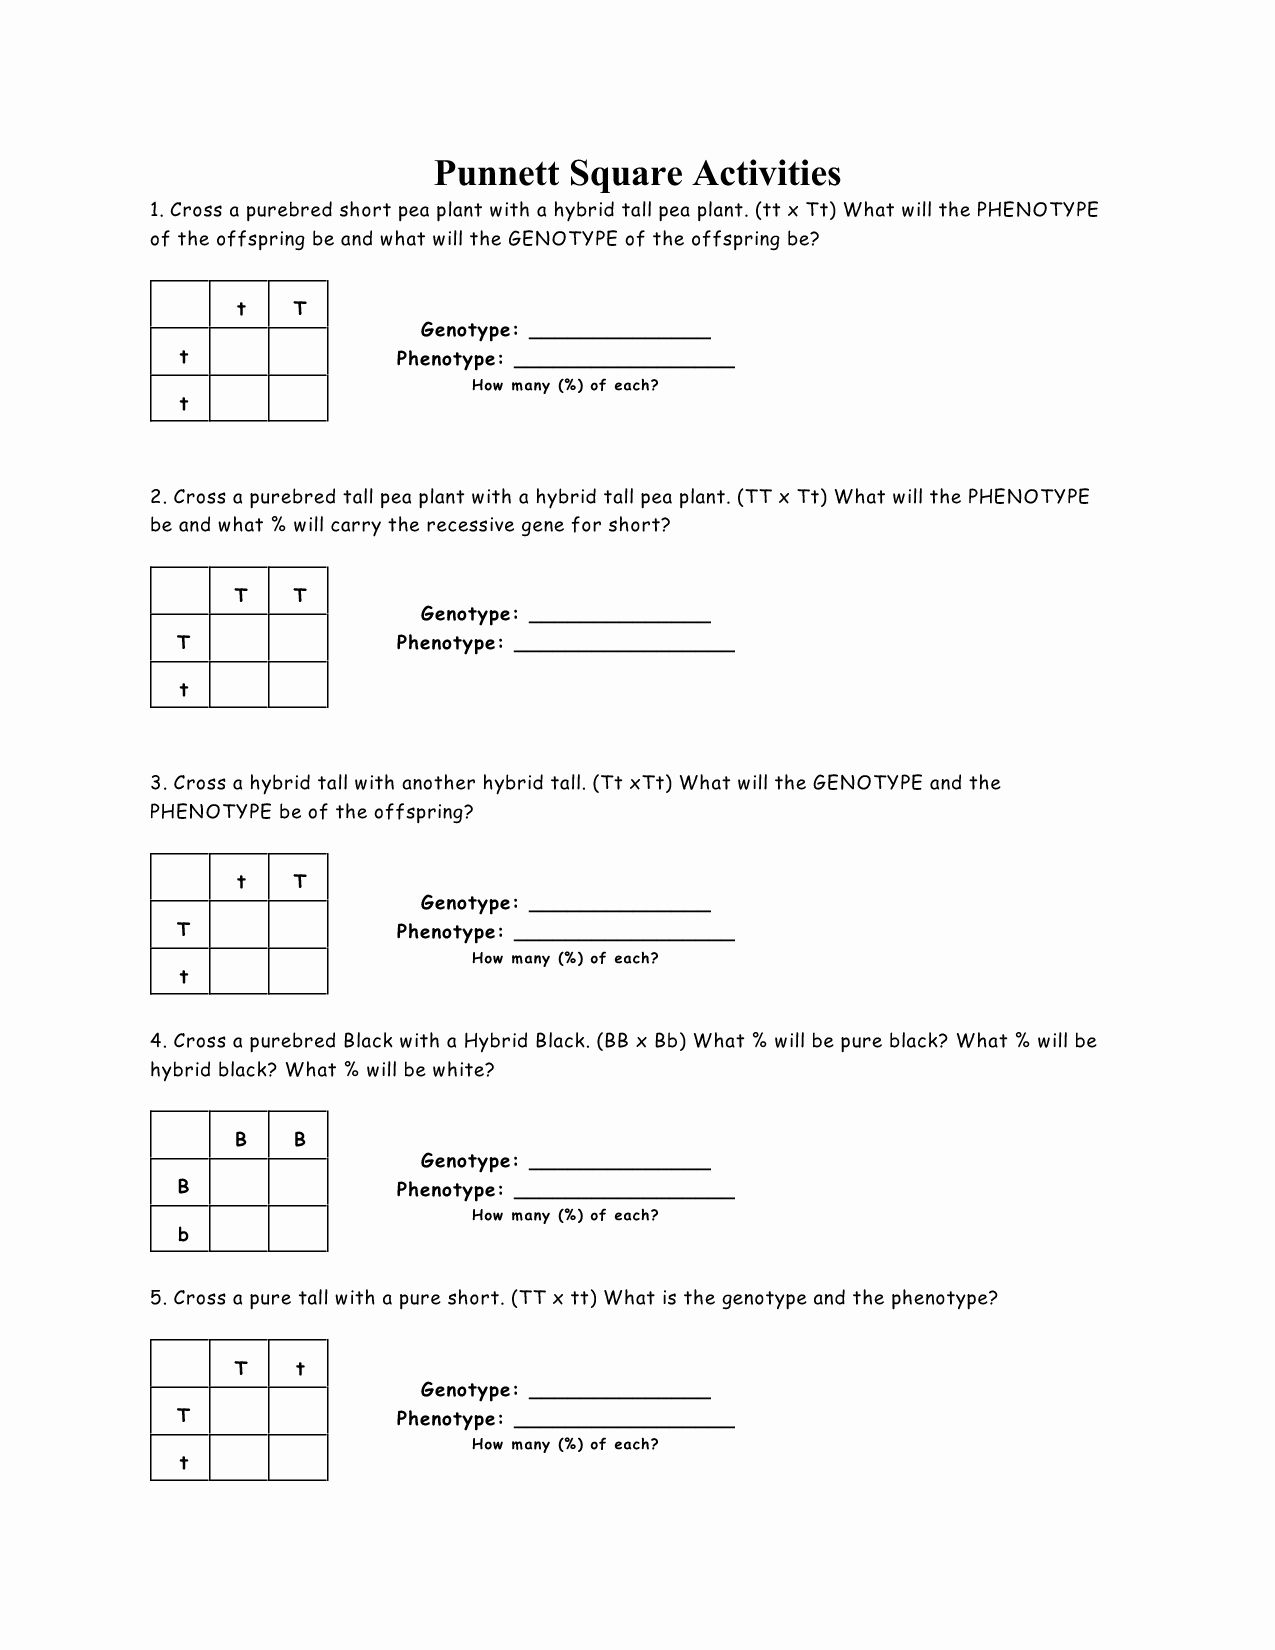 Punnett Square Practice Worksheet Answers Awesome 15 Best Of Punnett Square Worksheet Answer Ke In 2020 Practices Worksheets Punnett Squares Persuasive Writing Prompts